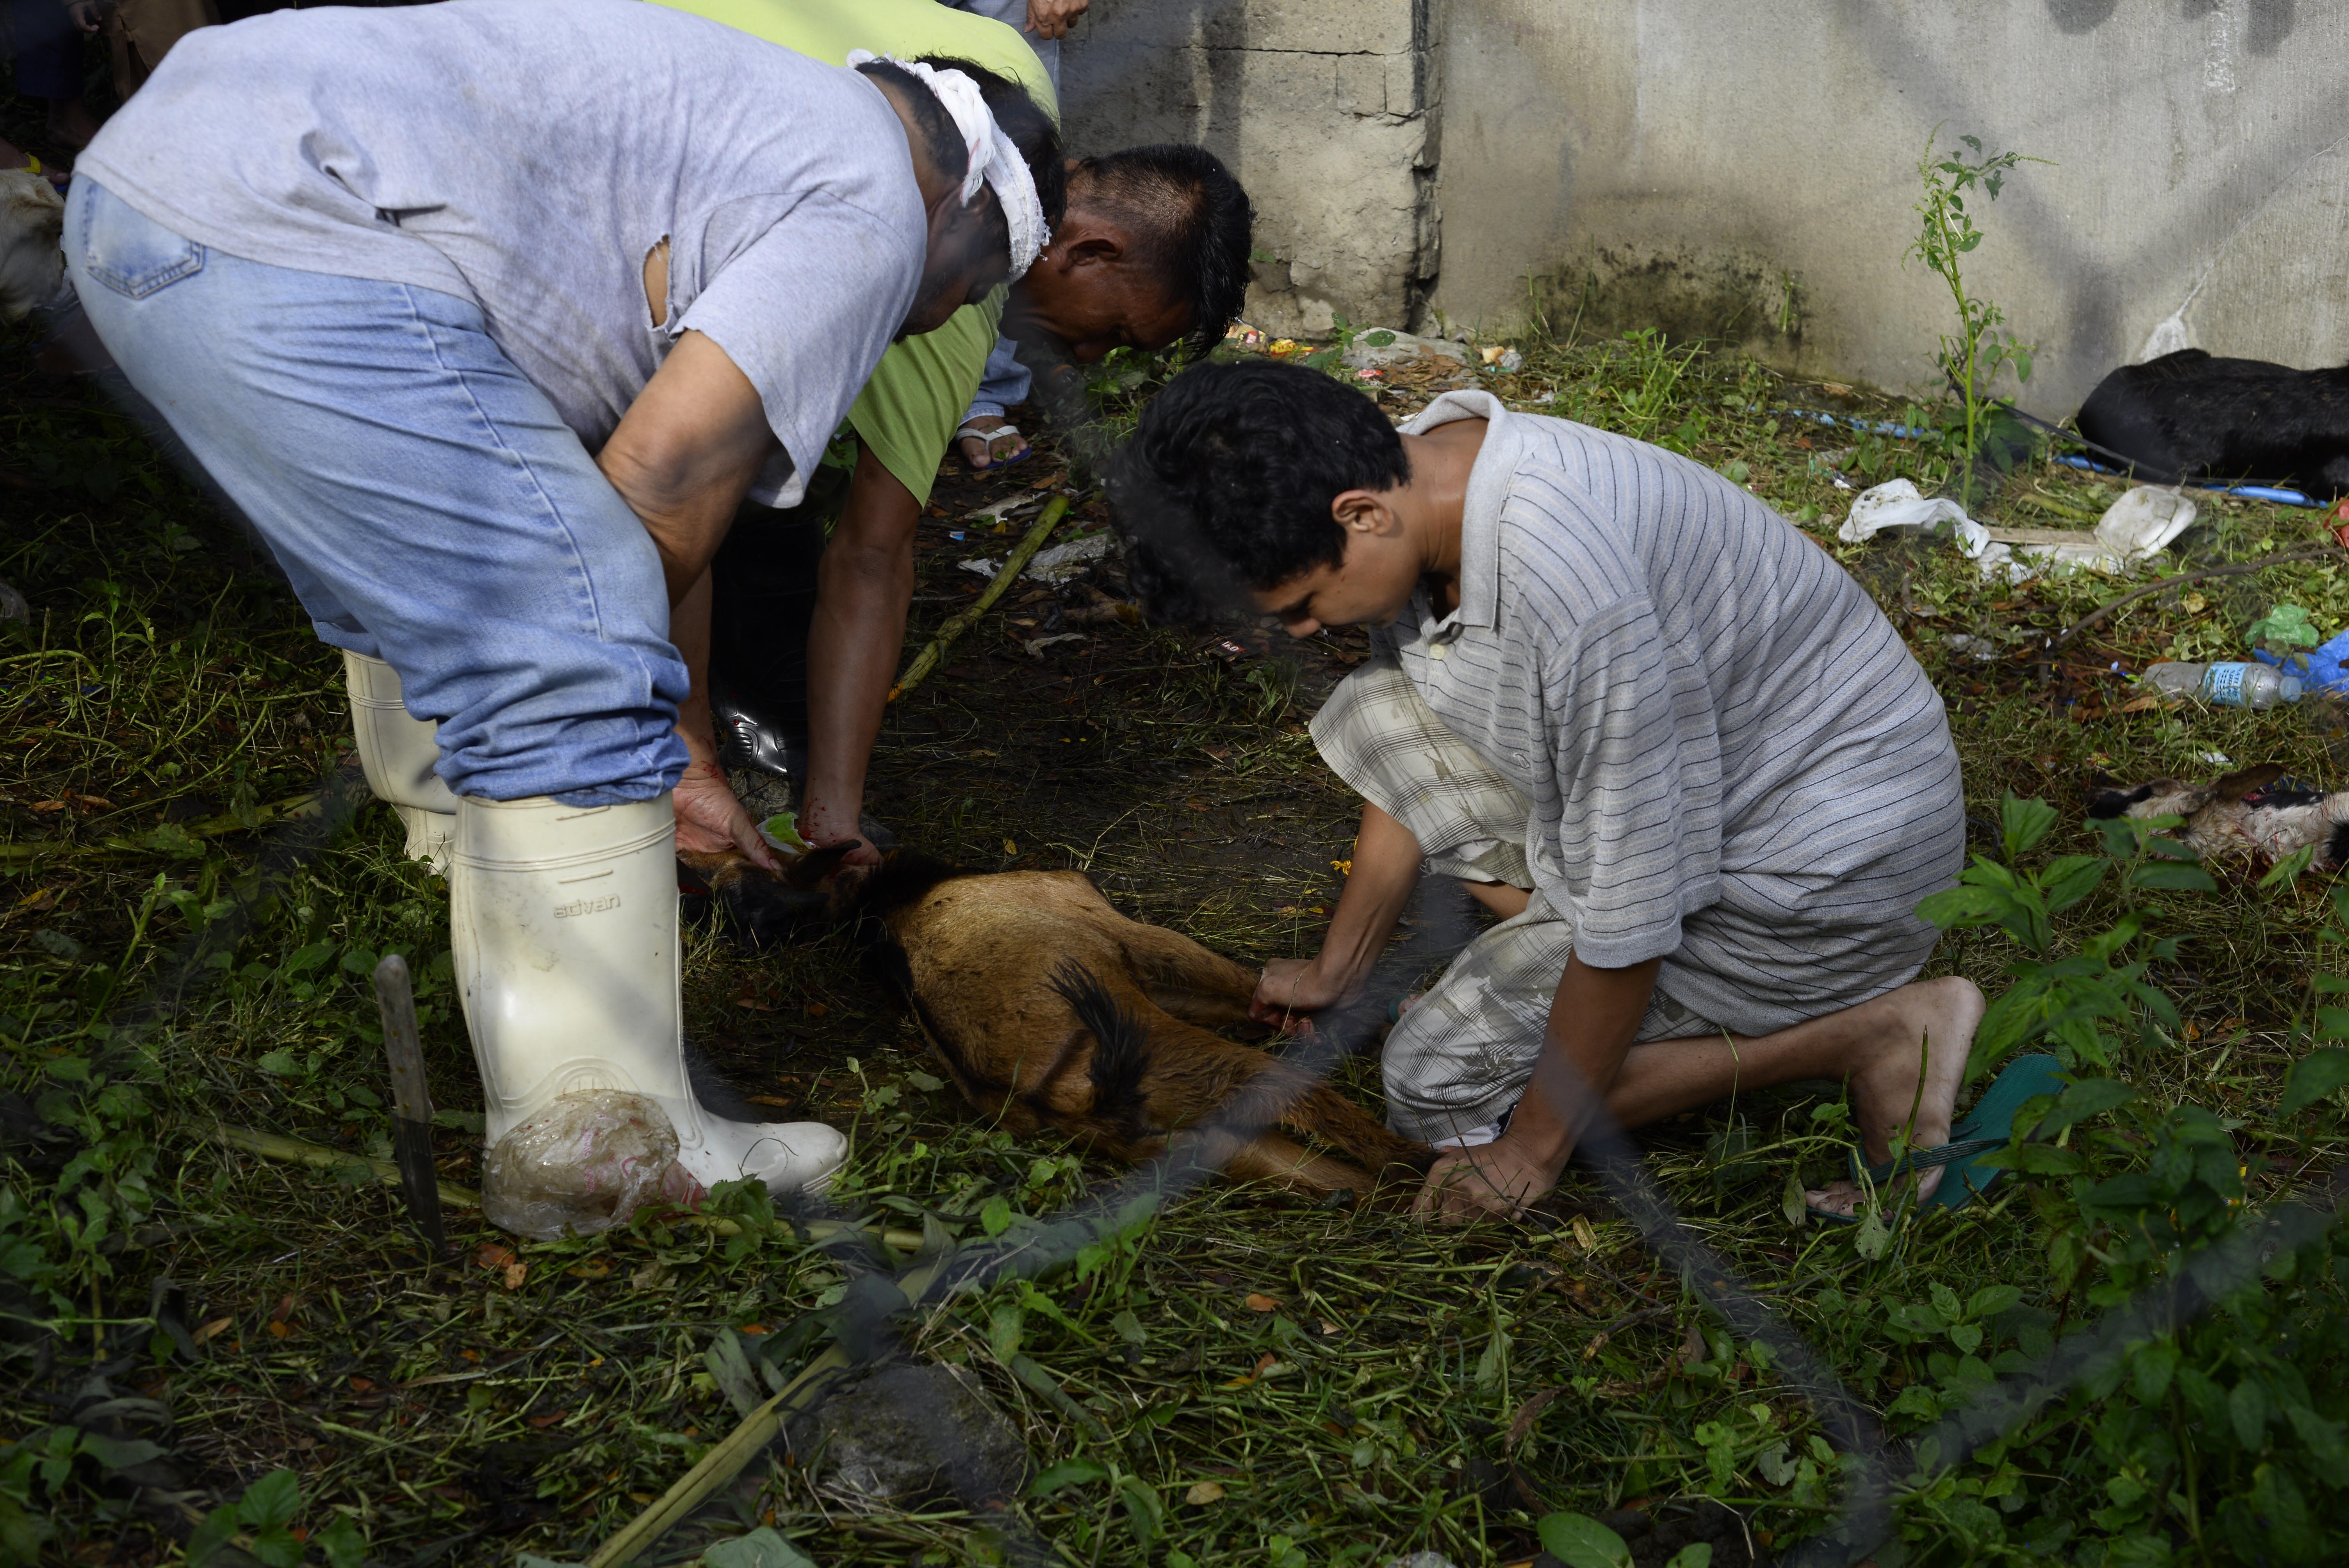 OFFERING. A goat is slaughtered outside the Blue Mosque in Taguig City on August 21, 2018, as part of the Eid'l Adha celebration this year. Photo by Maria Tan/Rappler